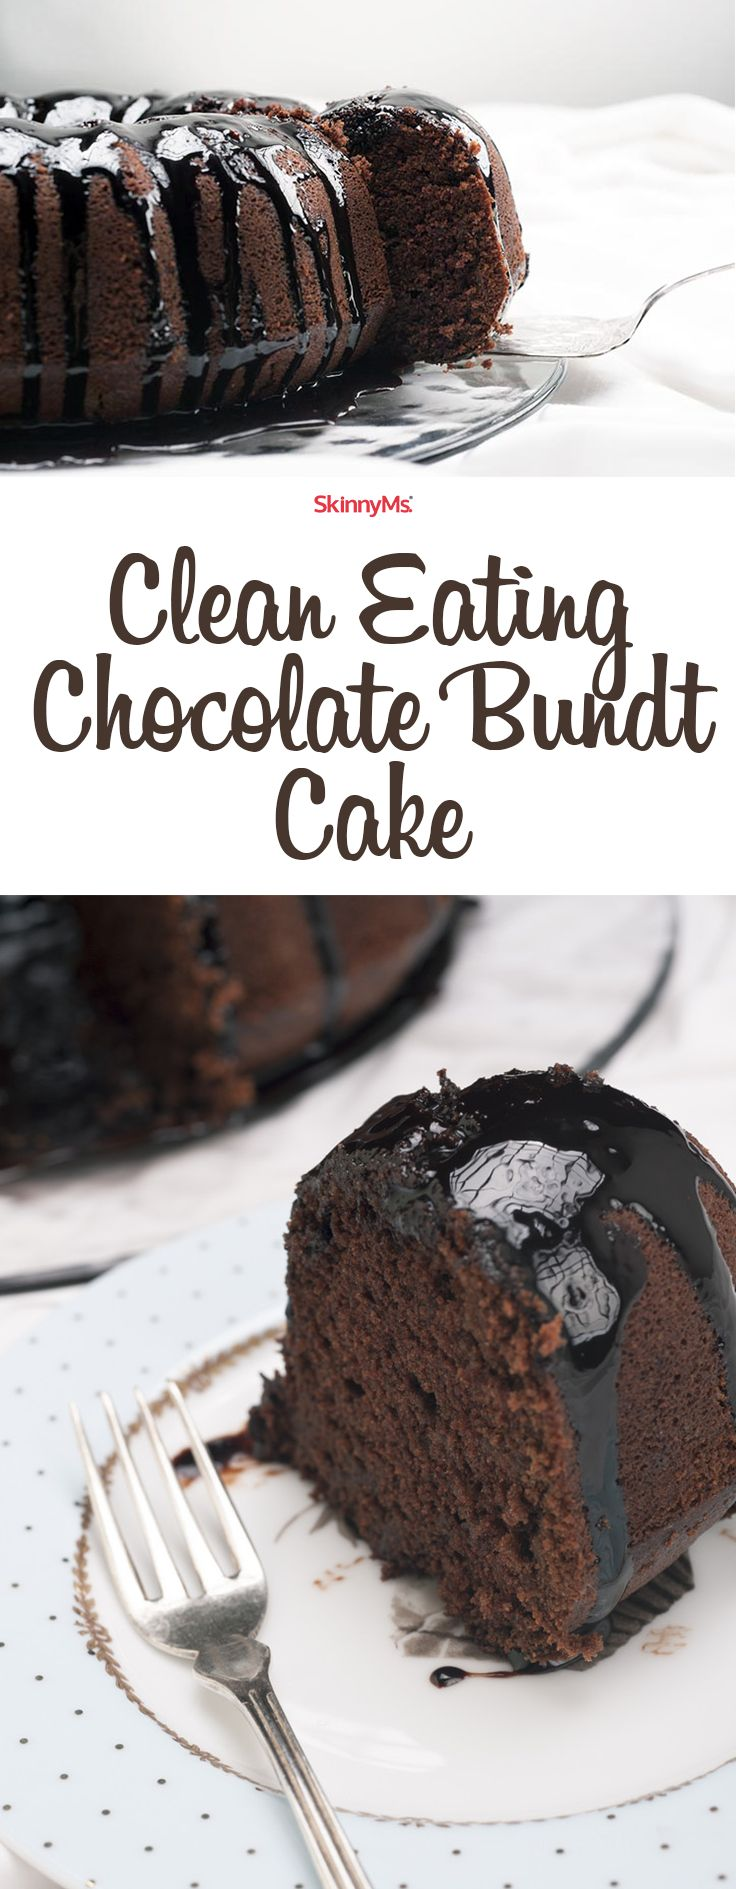 This Clean Eating Chocolate Bundt Cake doesn't use vegetable oil, or refined sugars. Instead, it calls for clean ingredients like coconut sugar and Greek yogurt, which lend moist texture to each scrumptious slice. It's heavenly! #skinnyms